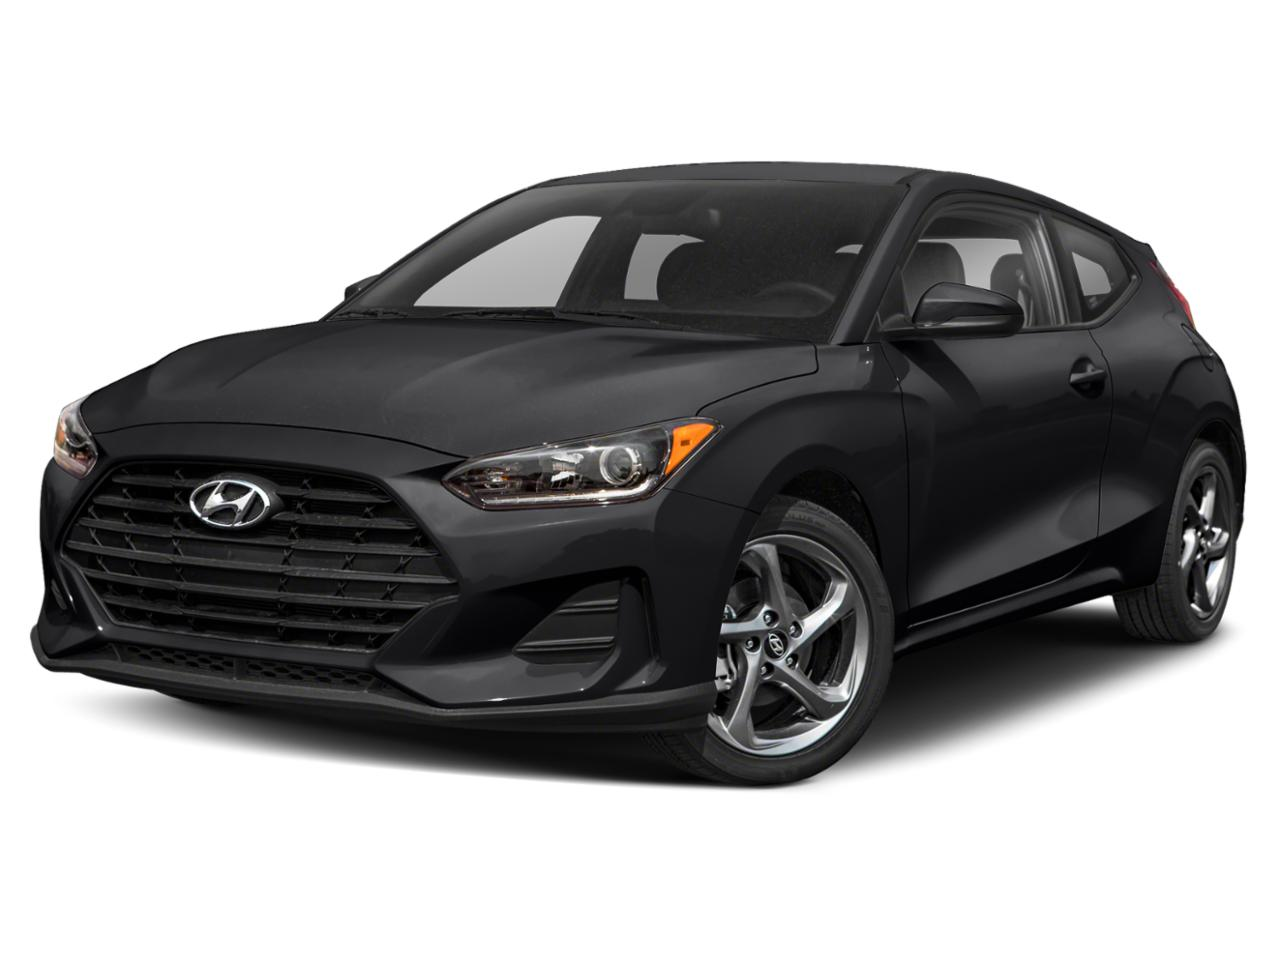 2020 Hyundai Veloster Vehicle Photo in Merrillville, IN 46410